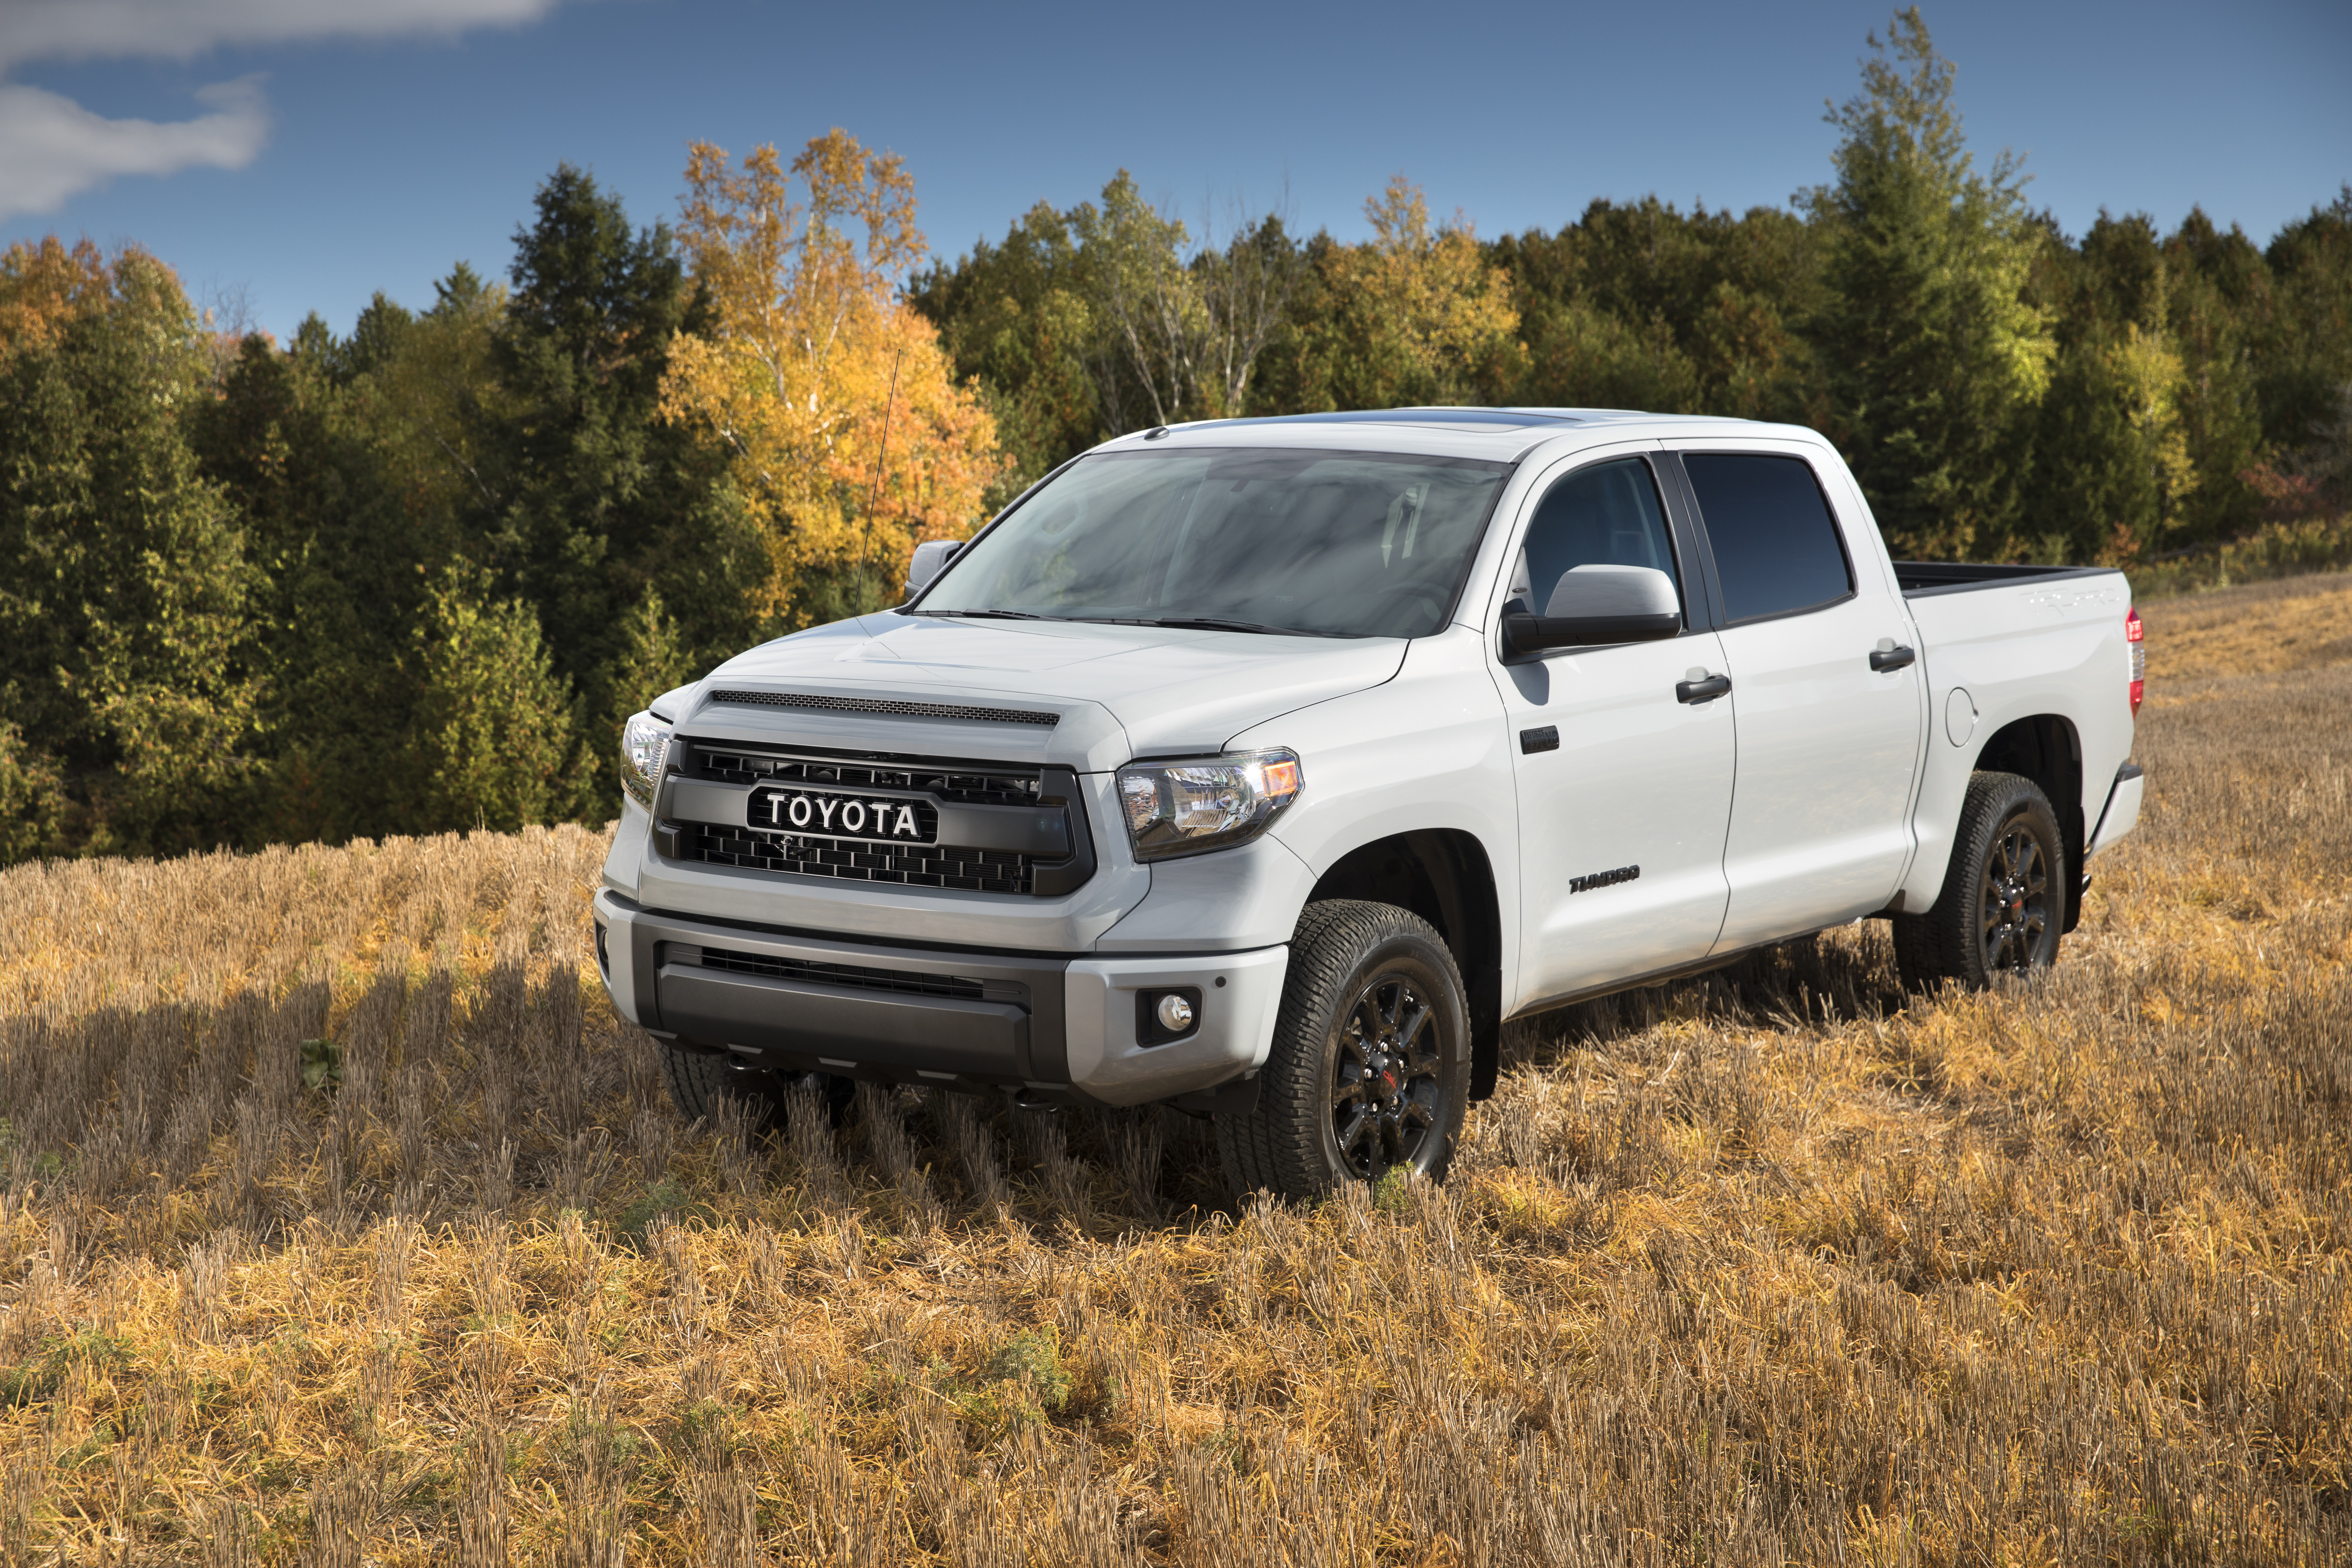 Tundra Trd Pro >> Weekends Are Epic In The 2017 Toyota Tundra Trd Pro Oct 20 2016